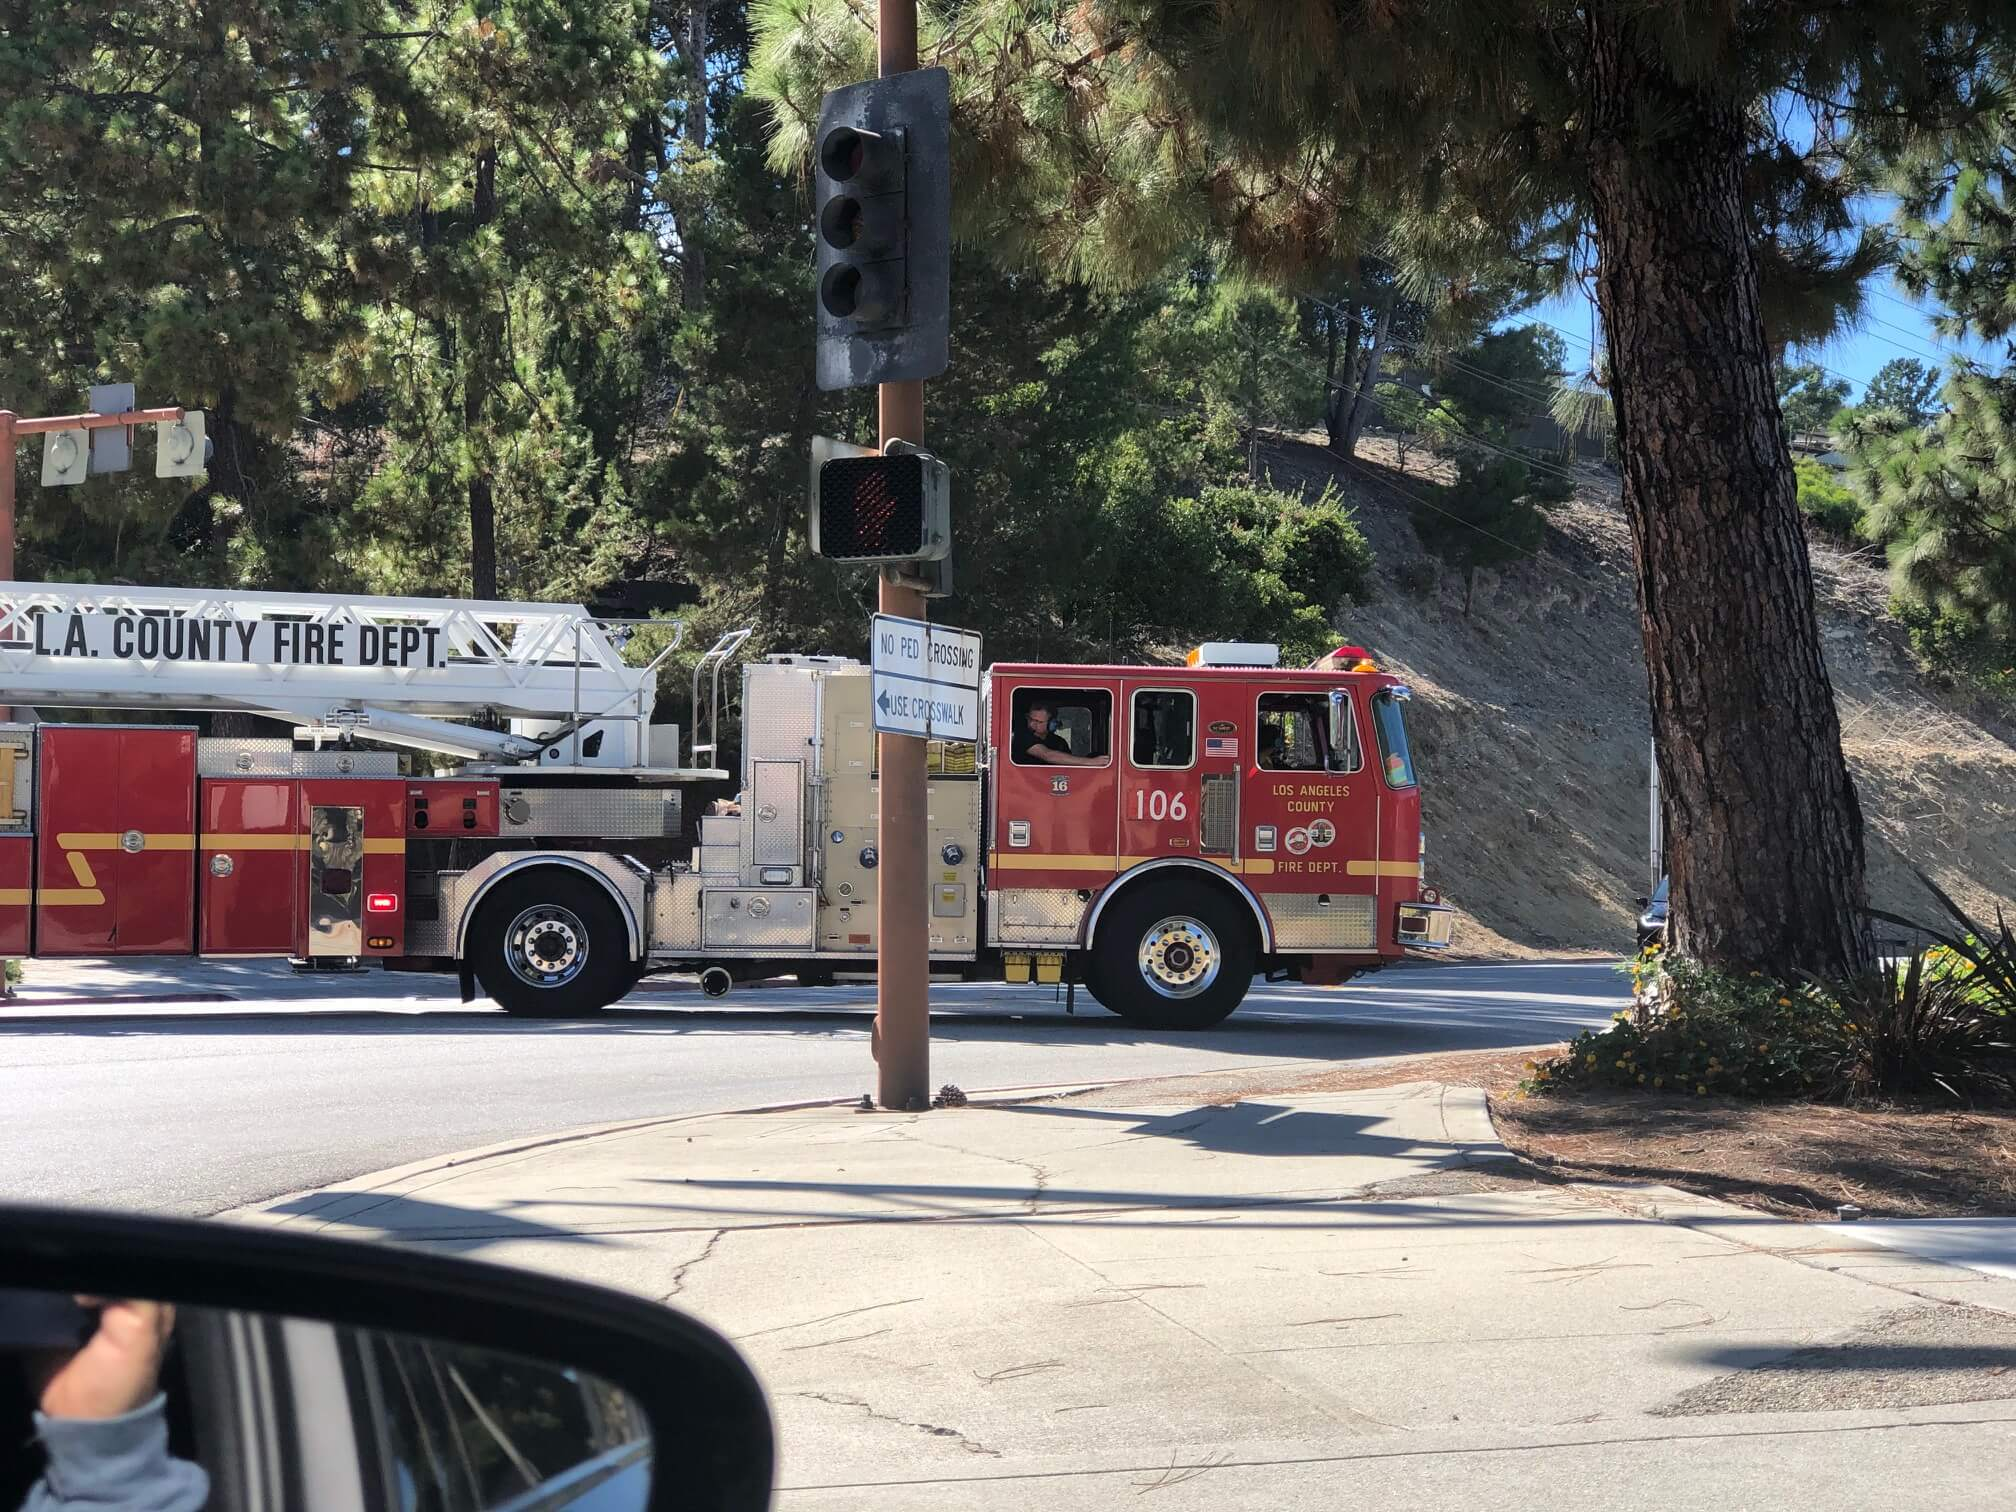 Fire and ladder truck in Rancho Palos Verdes, CA